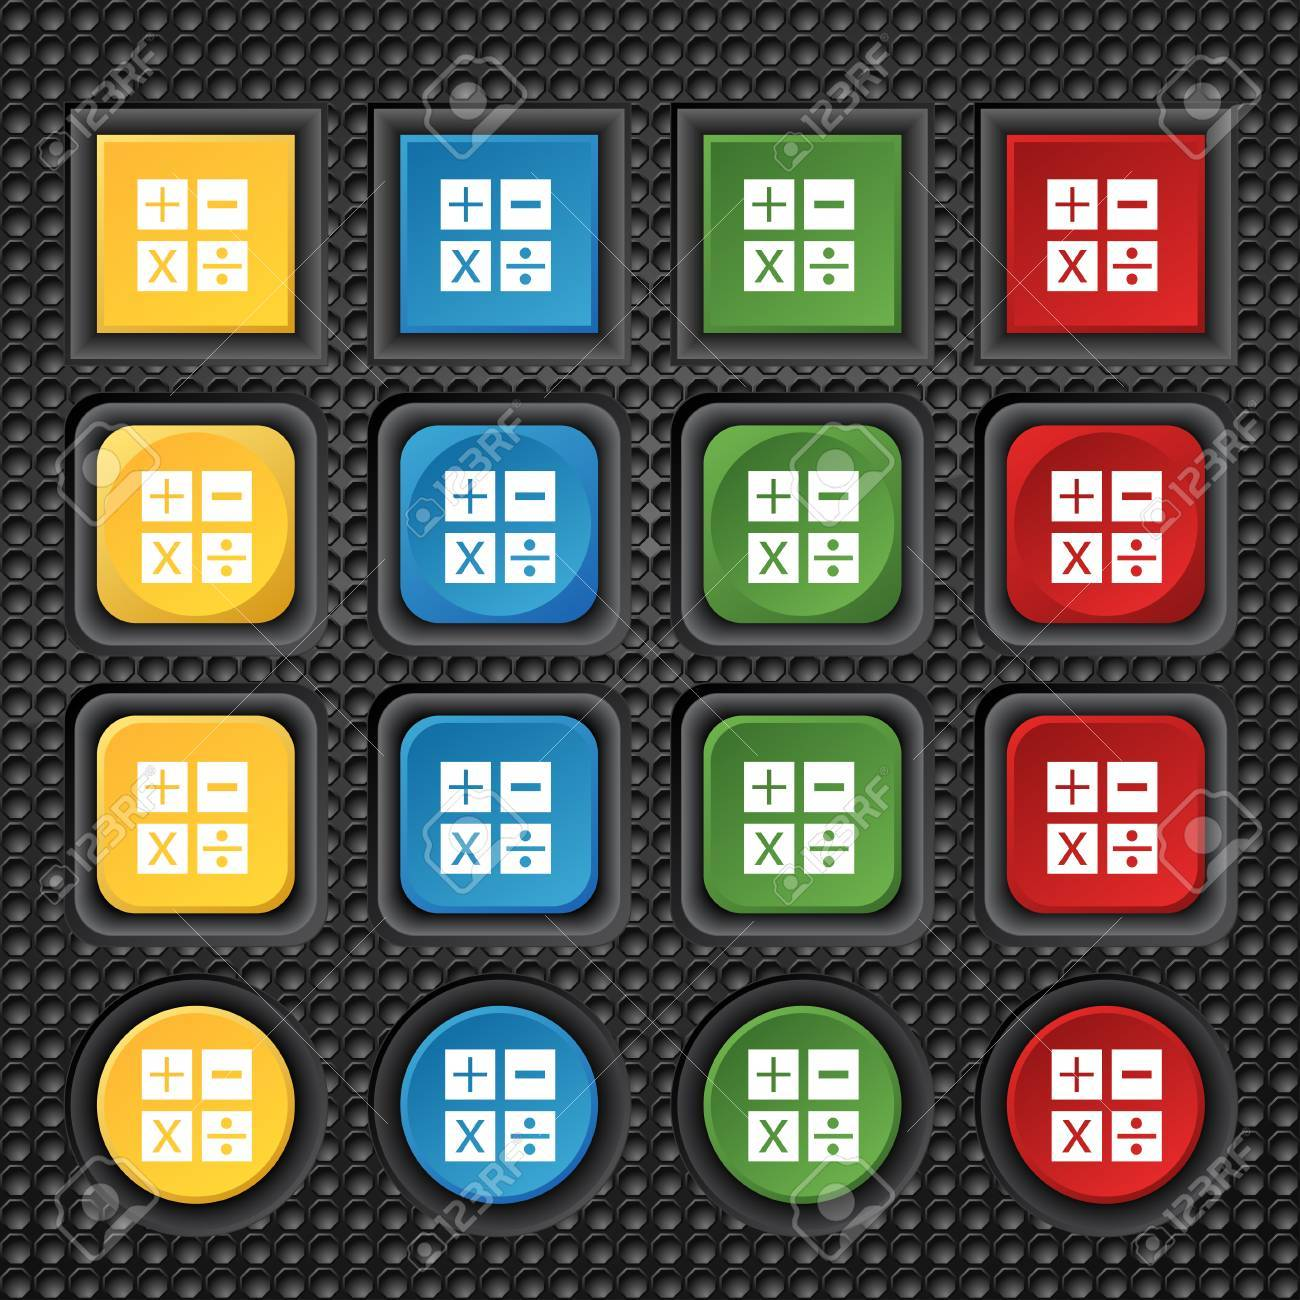 Multiplication division plus minus icon math symbol mathematics multiplication division plus minus icon math symbol mathematics set of colour buttons stock biocorpaavc Image collections